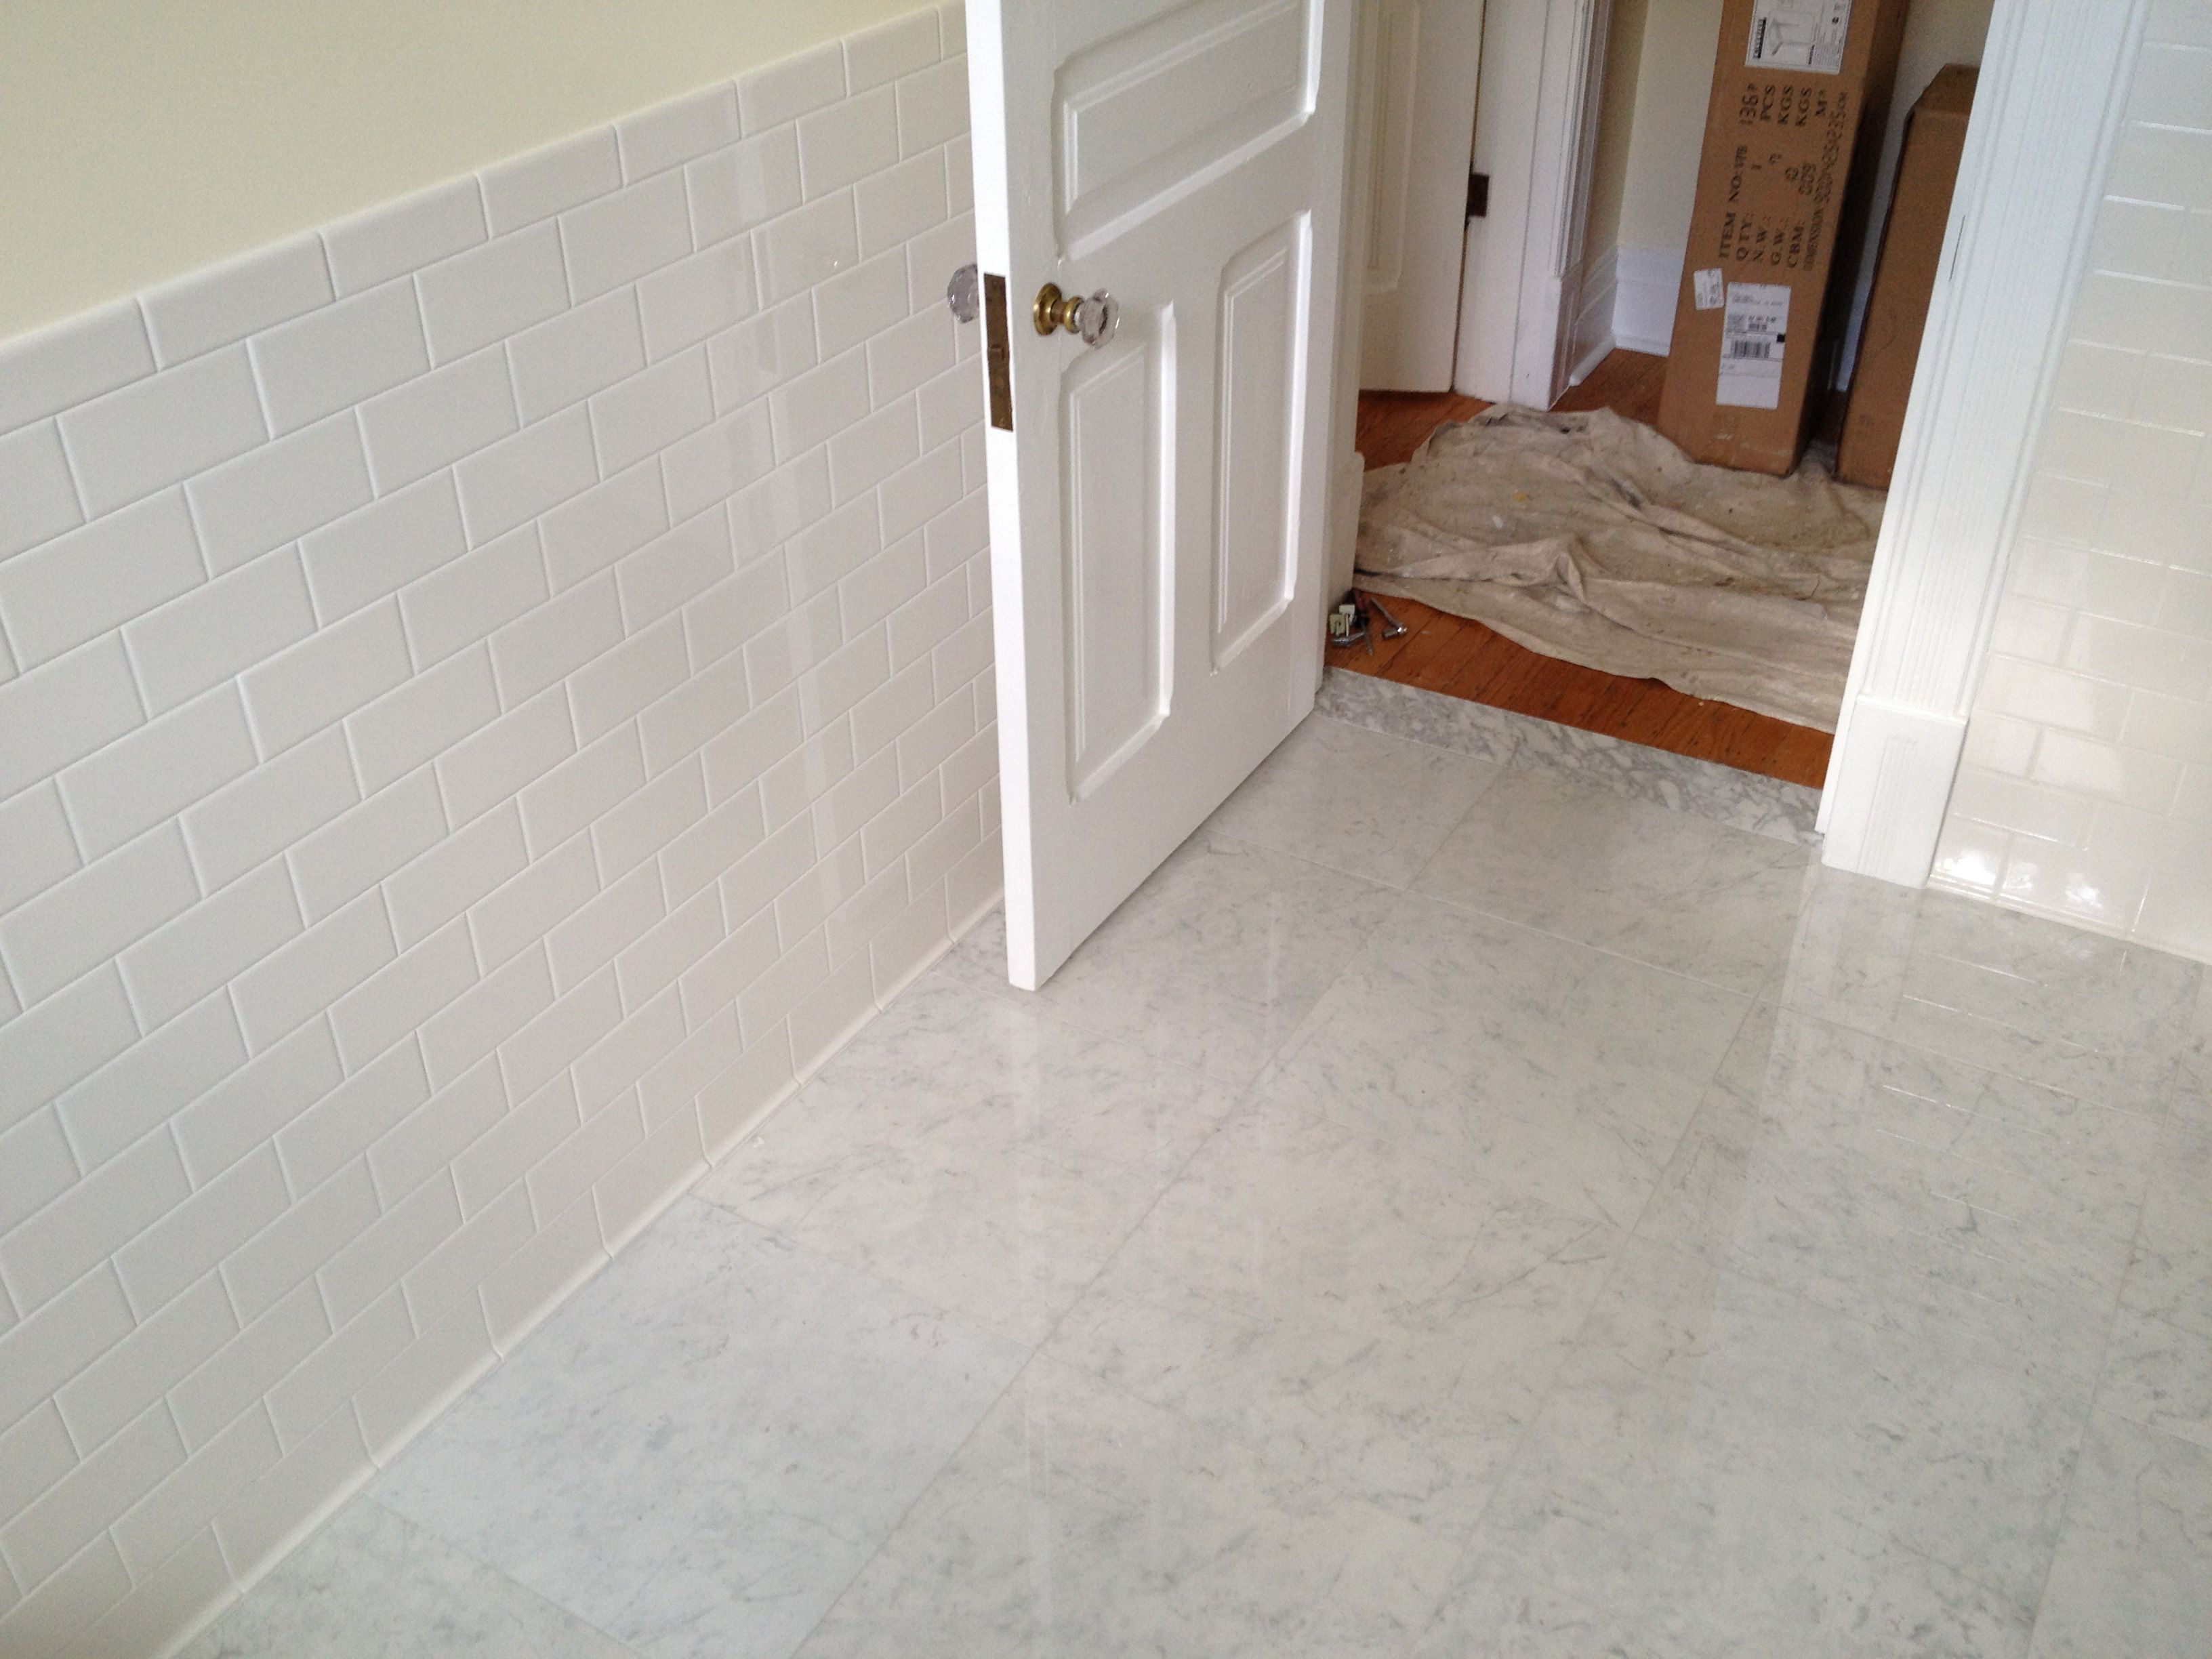 porcelain tile, marble look alike, bianca carrara, white subway